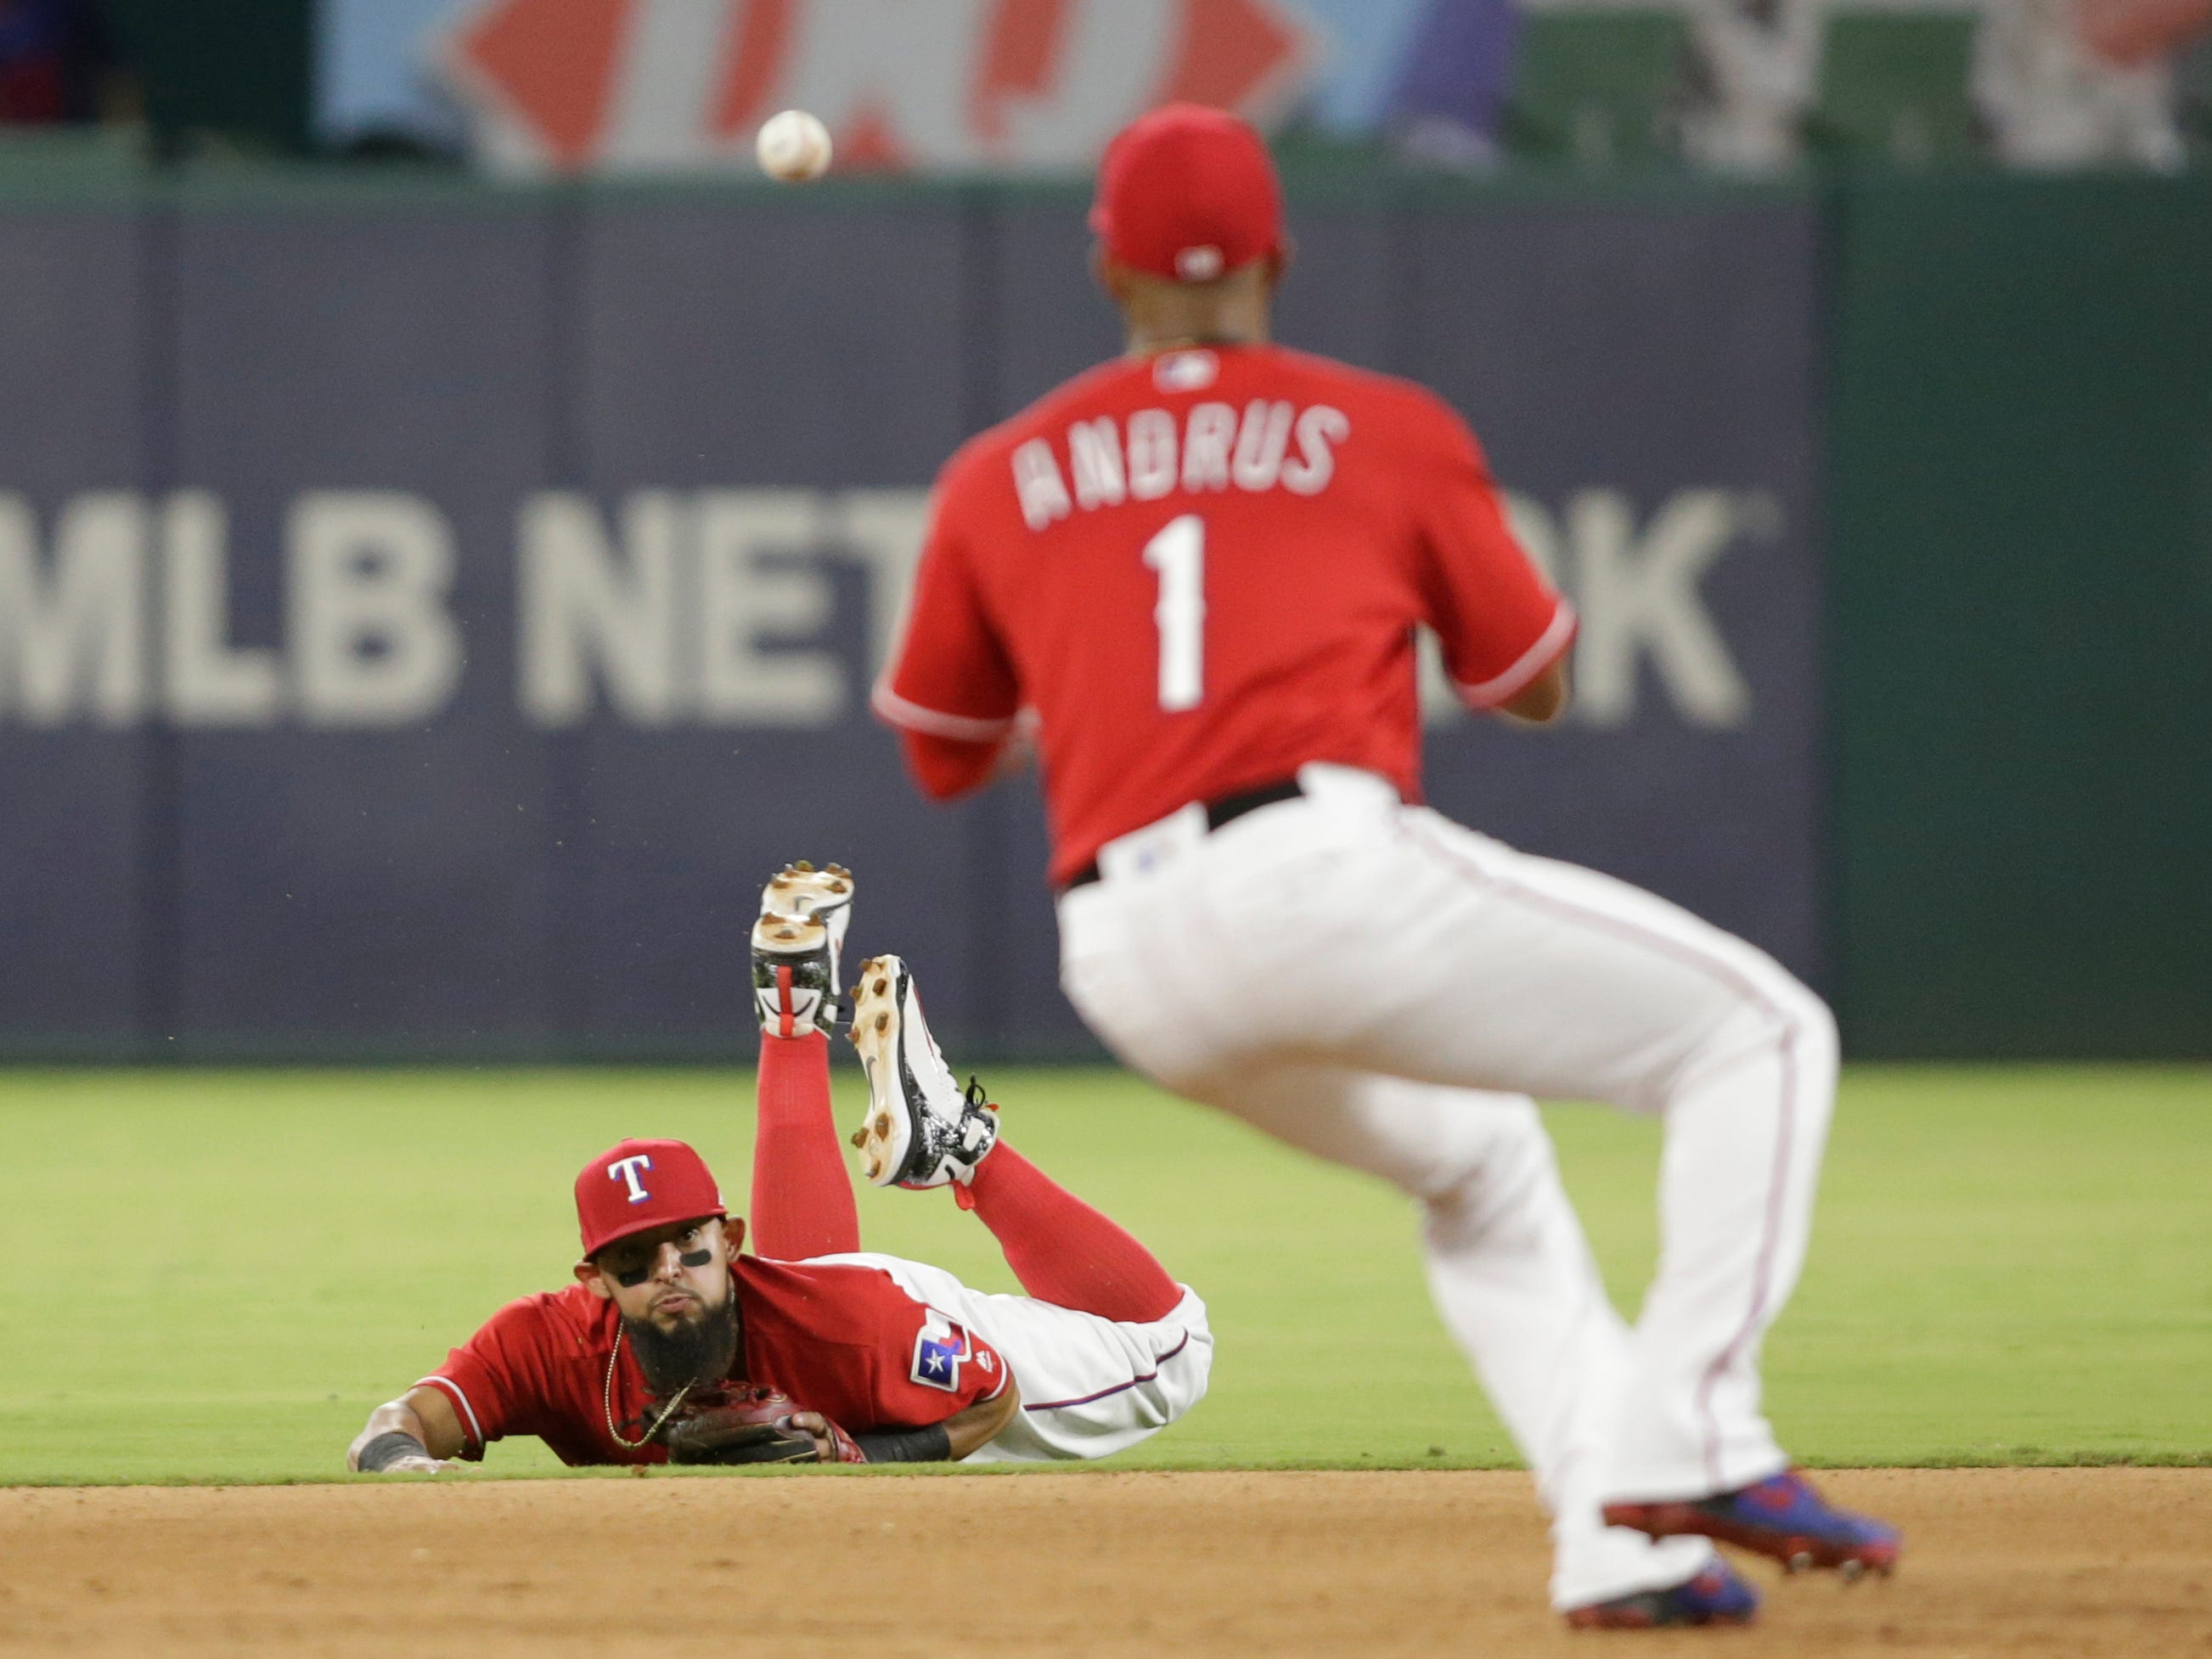 Aug 14, 2018:Texas Rangers second baseman Rougned Odor (12) throws to shortstop Elvis Andrus (1) for a force out in the eighth inning against the Arizona Diamondbacks  at Globe Life Park in Arlington.